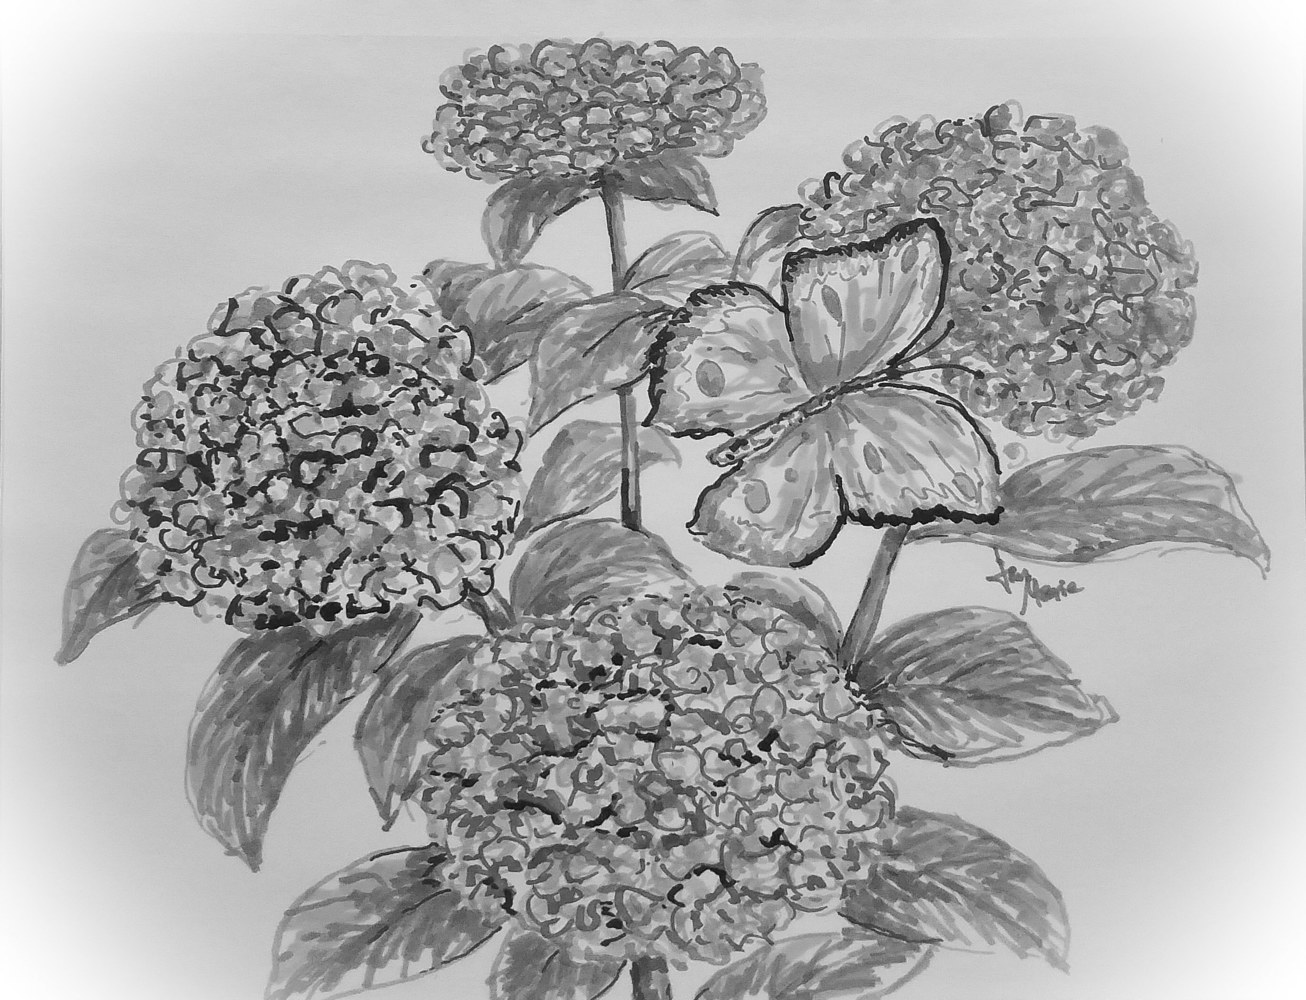 Hydrangeas Gray Scale by Jan Wirth